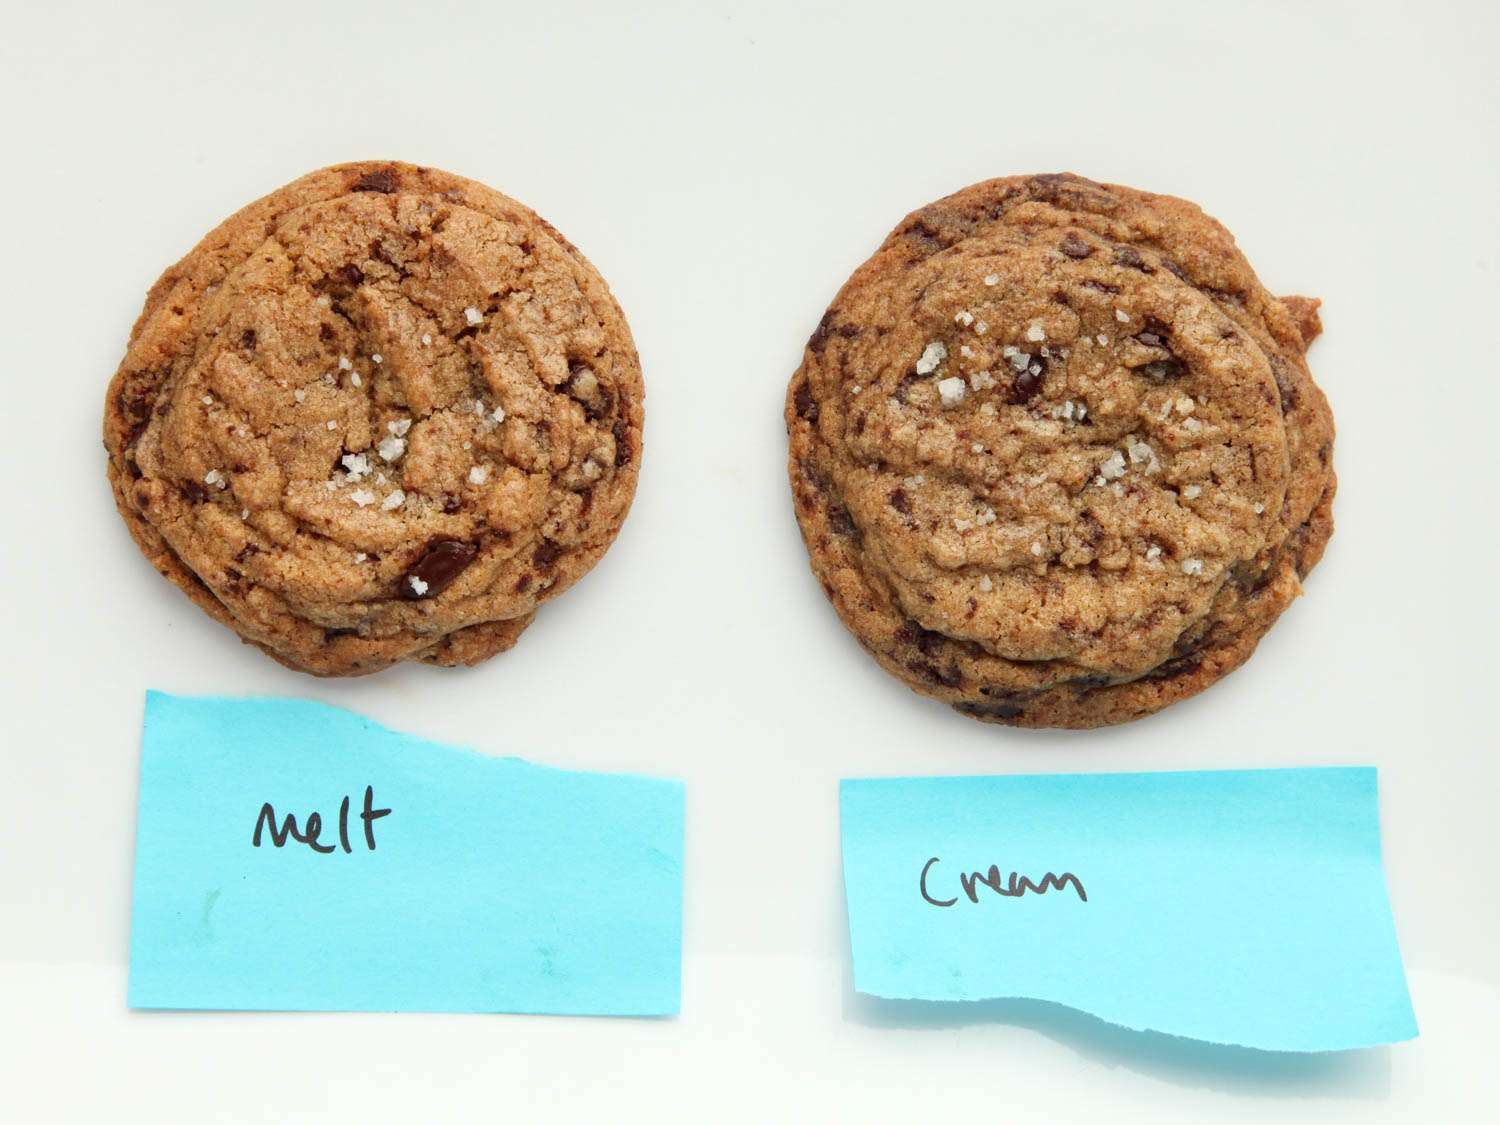 Side by side image showing two chocolate chip cookies, one made with melted butter and one made using softened butter and the creaming method.